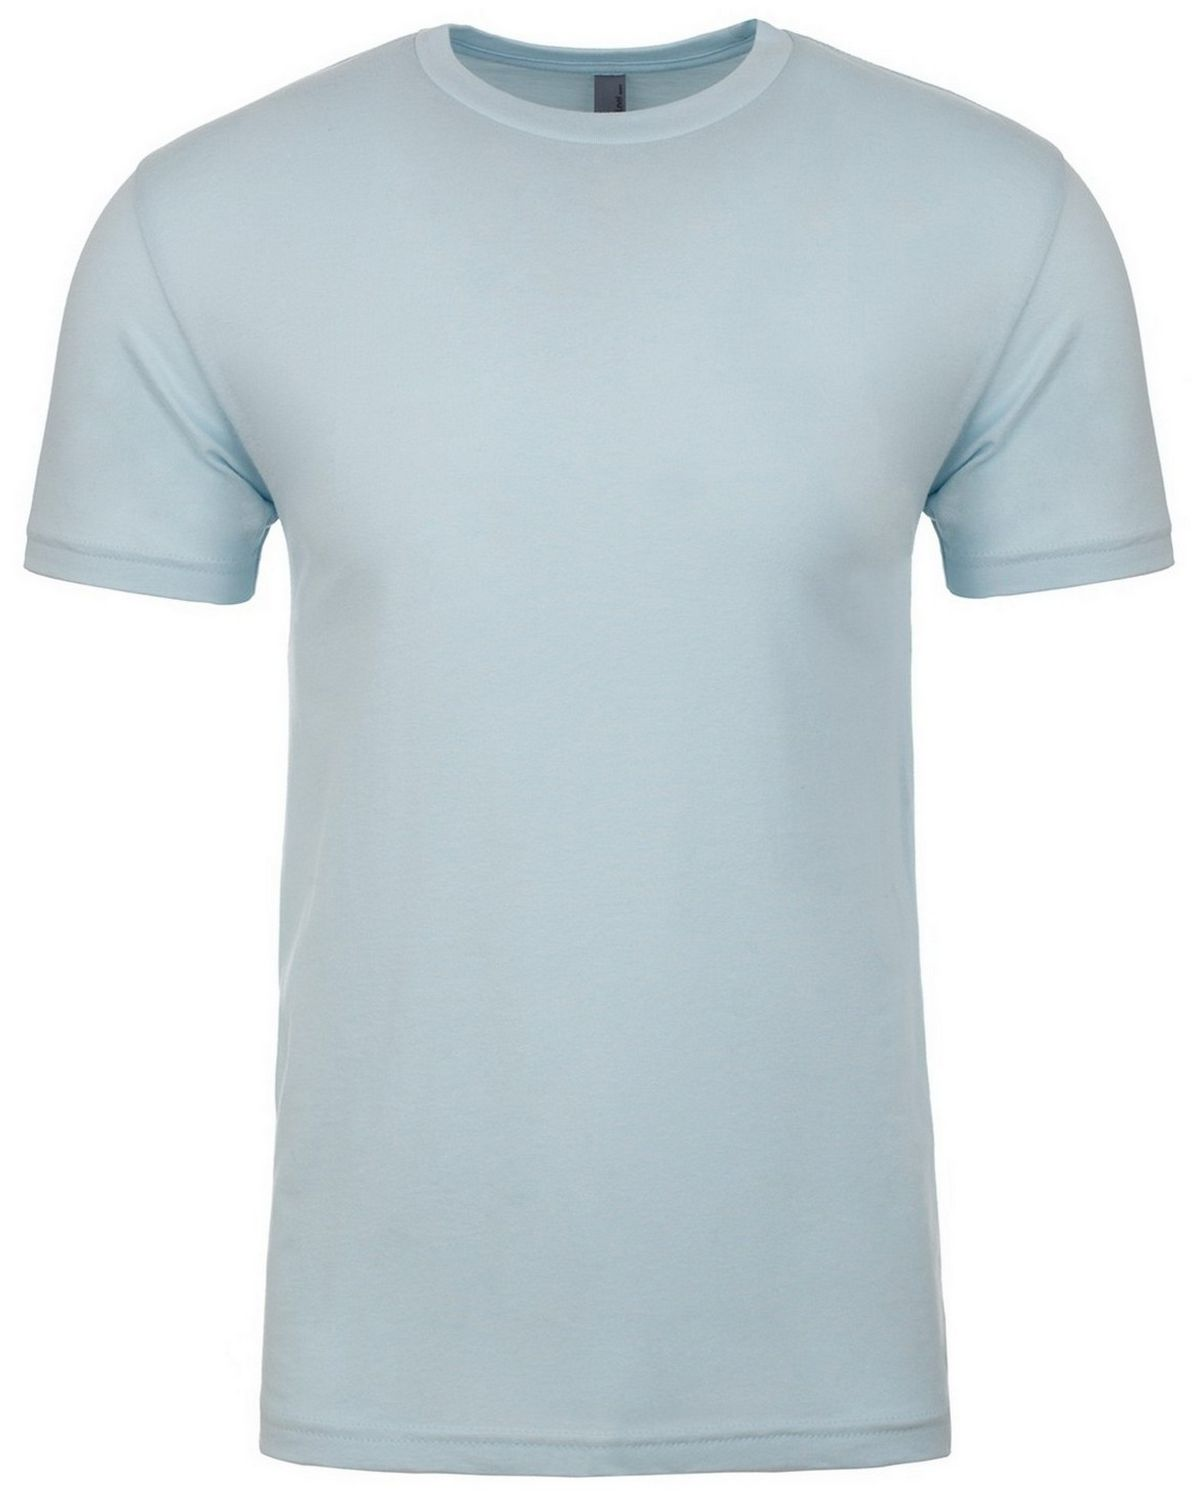 Next Level NL3600 Short Sleeve Tee - Light Blue - 3X NL3600